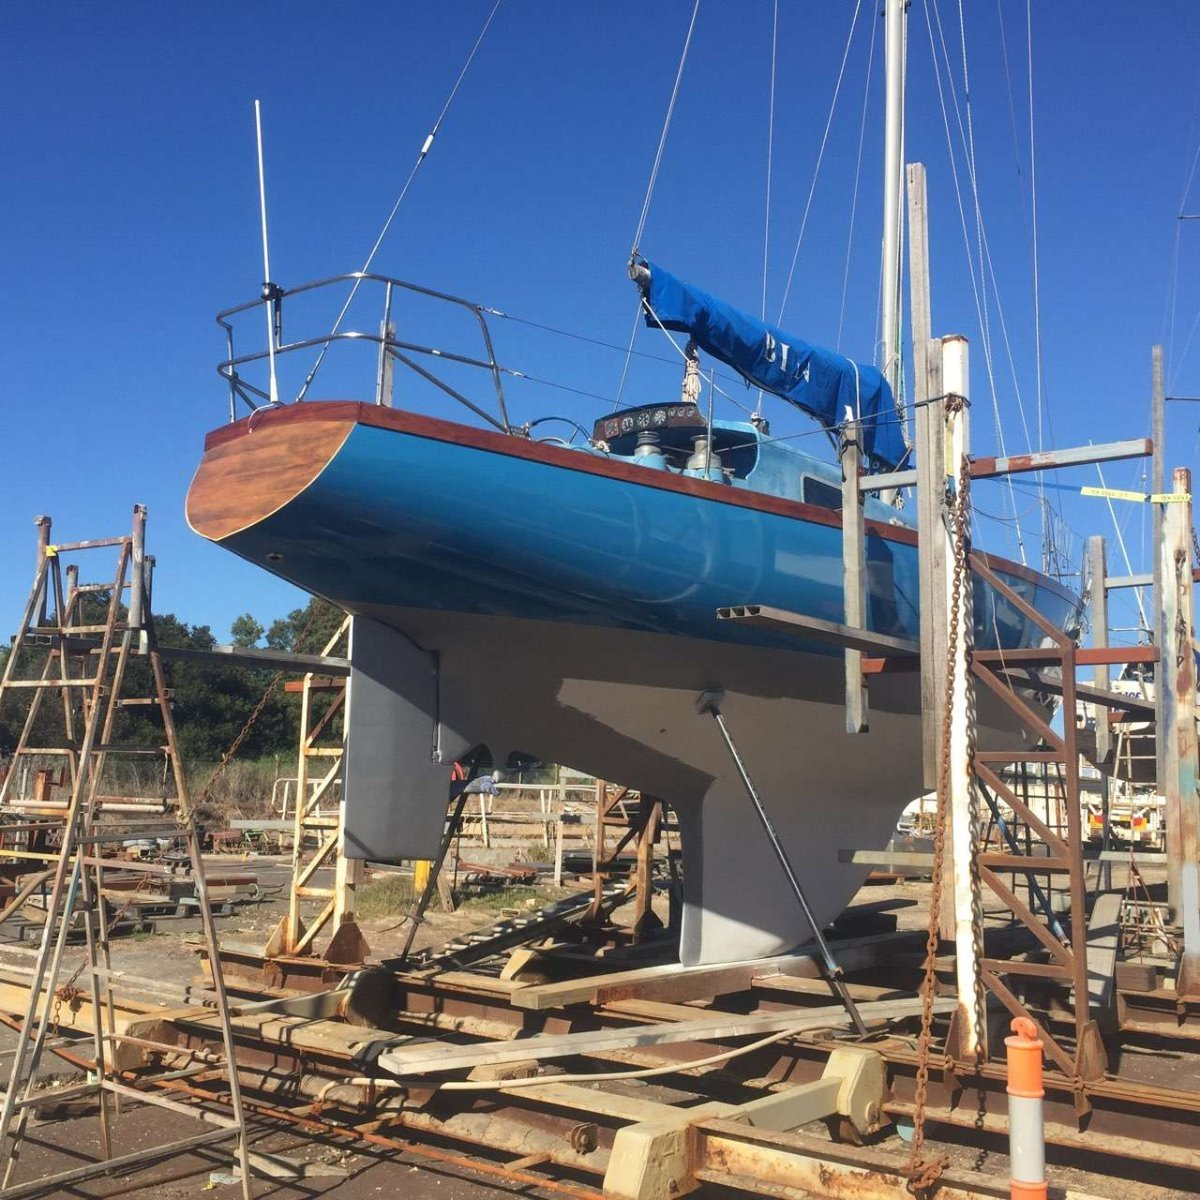 Swanson 36 price reduction due recent health issue.